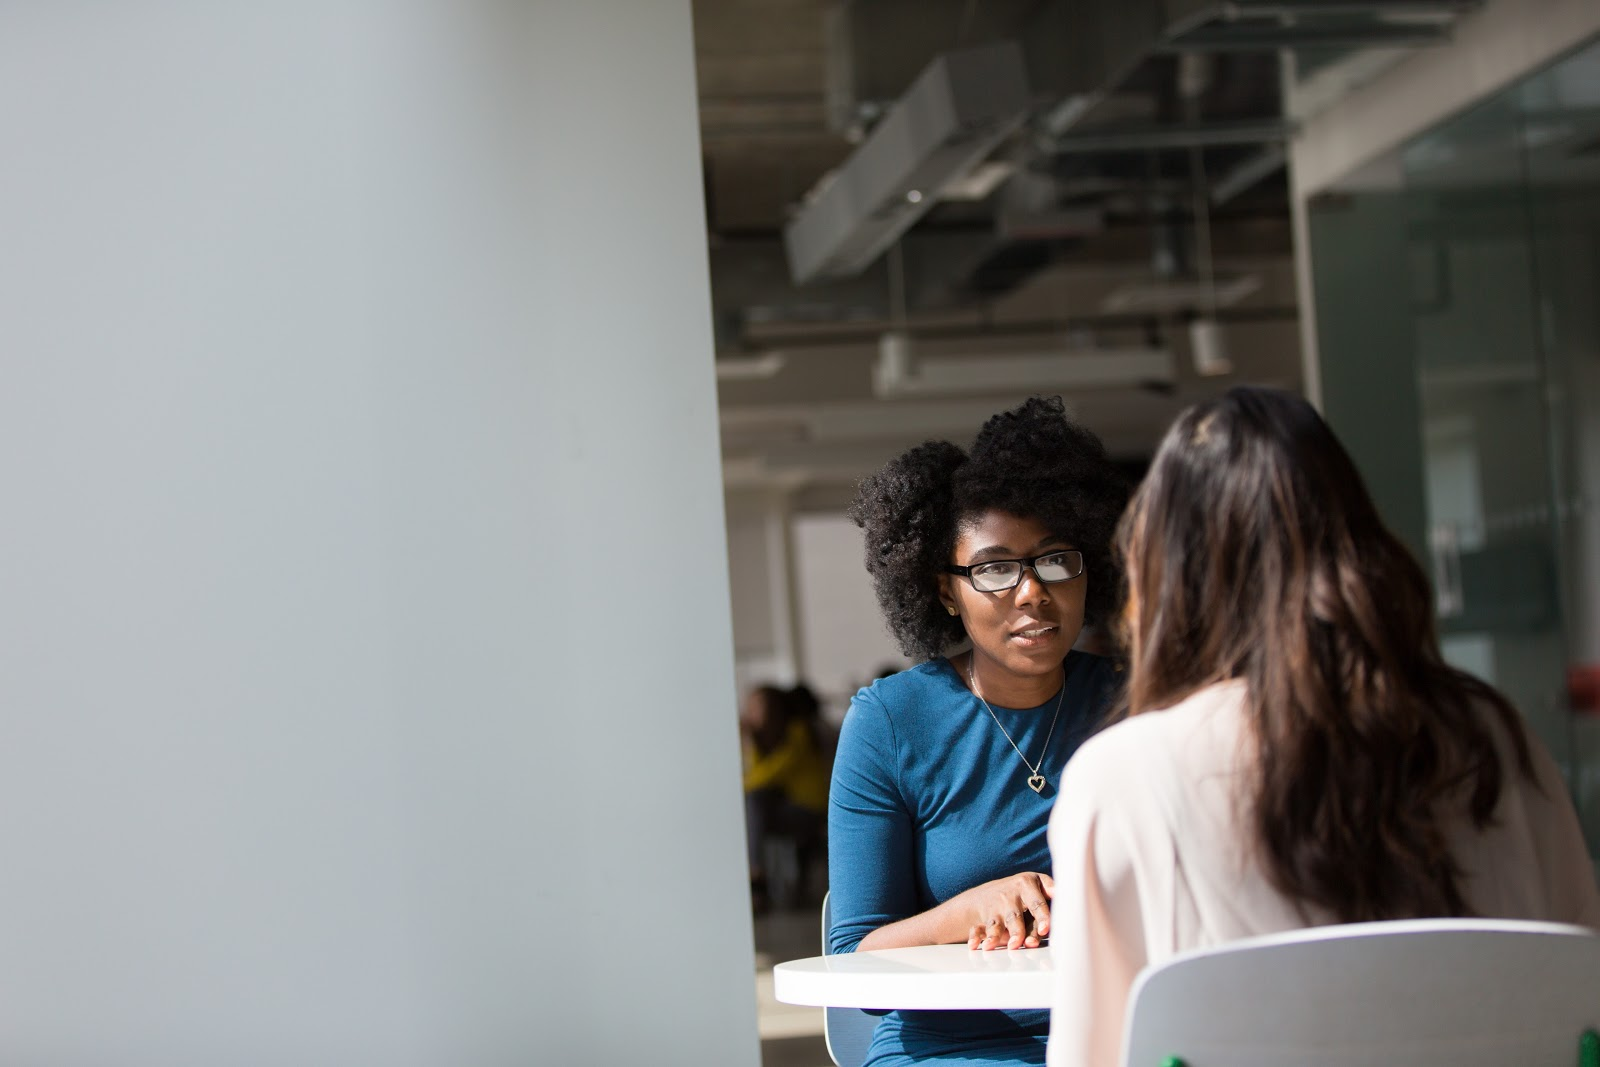 Two women sit in an interview like scenario at a table. One has her back toward us.